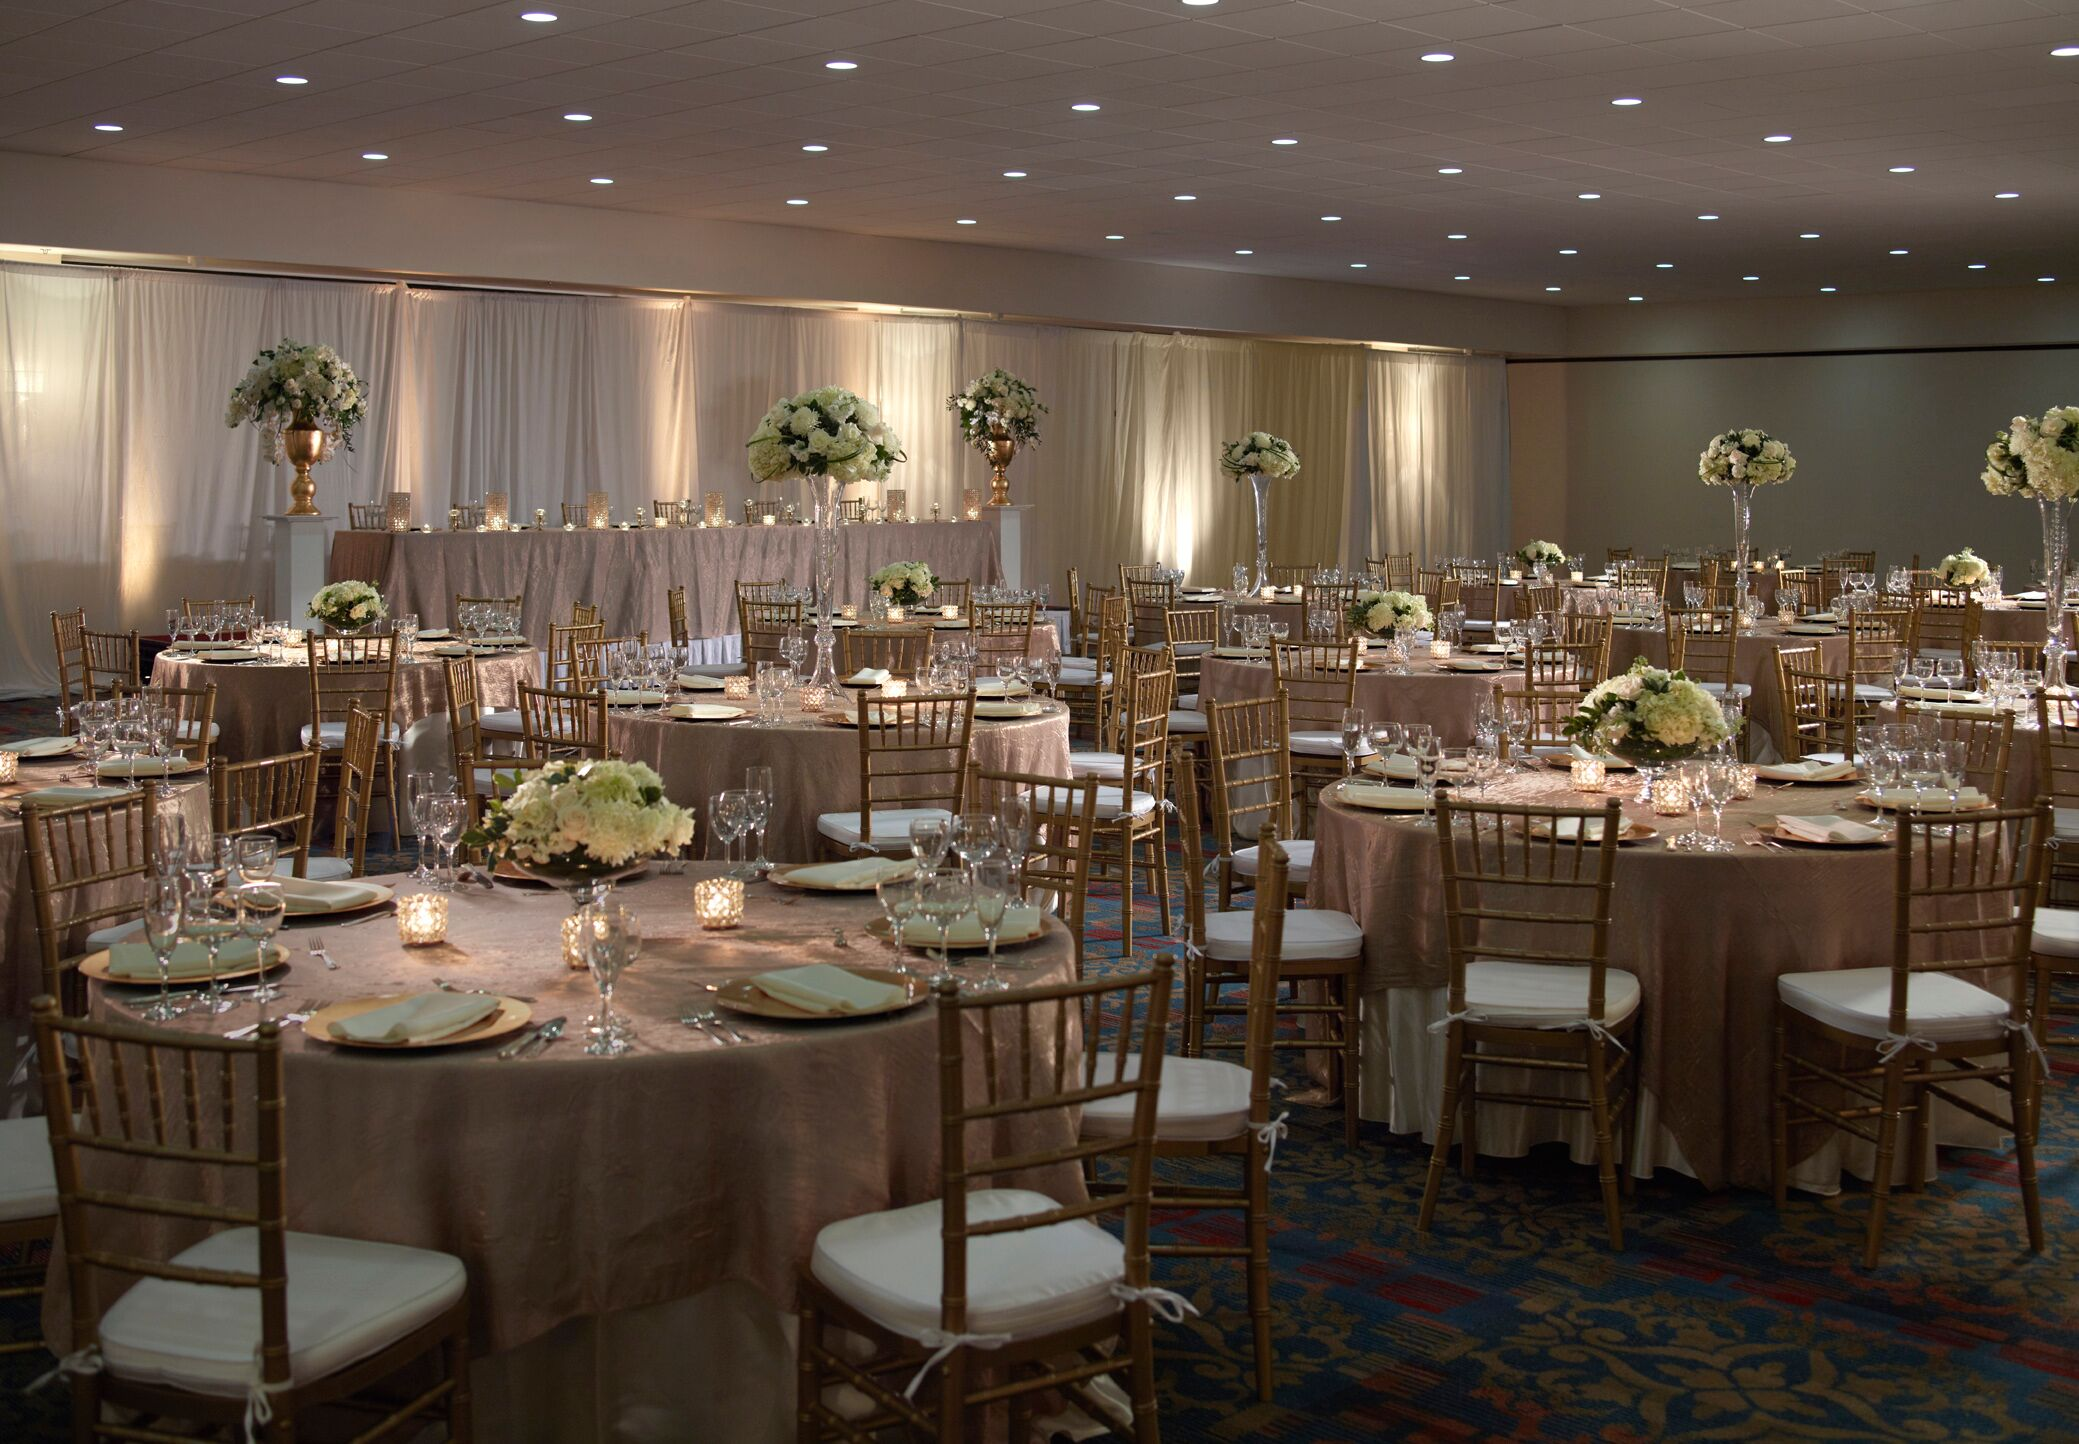 Wedding Reception Venues in Ankeny, IA - The Knot